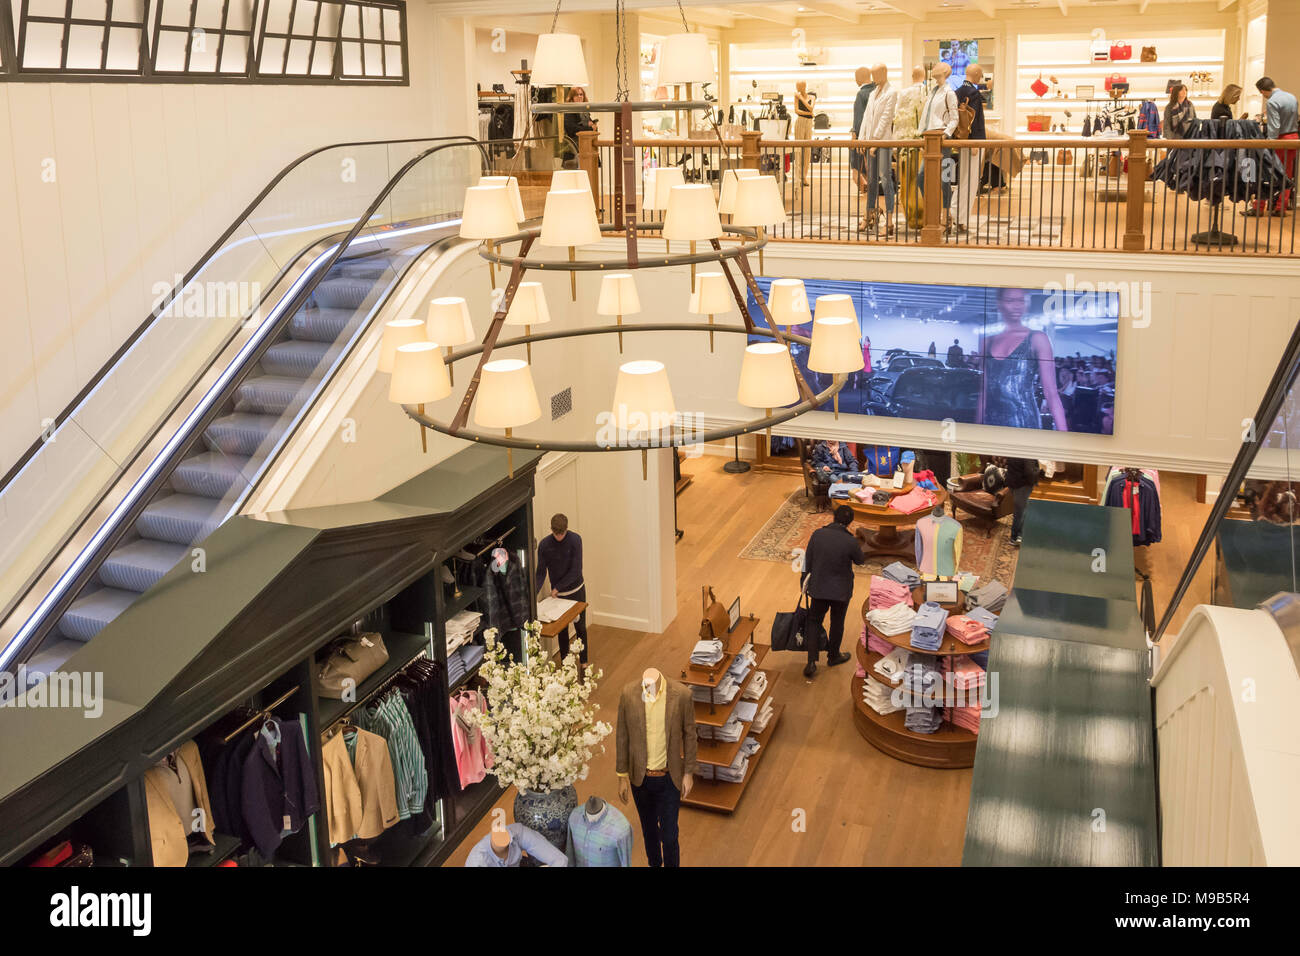 Interior of Polo Ralph Lauren store at Bicester Village Outlet Shopping Centre, Bicester, Oxfordshire, England, United Kingdom - Stock Image